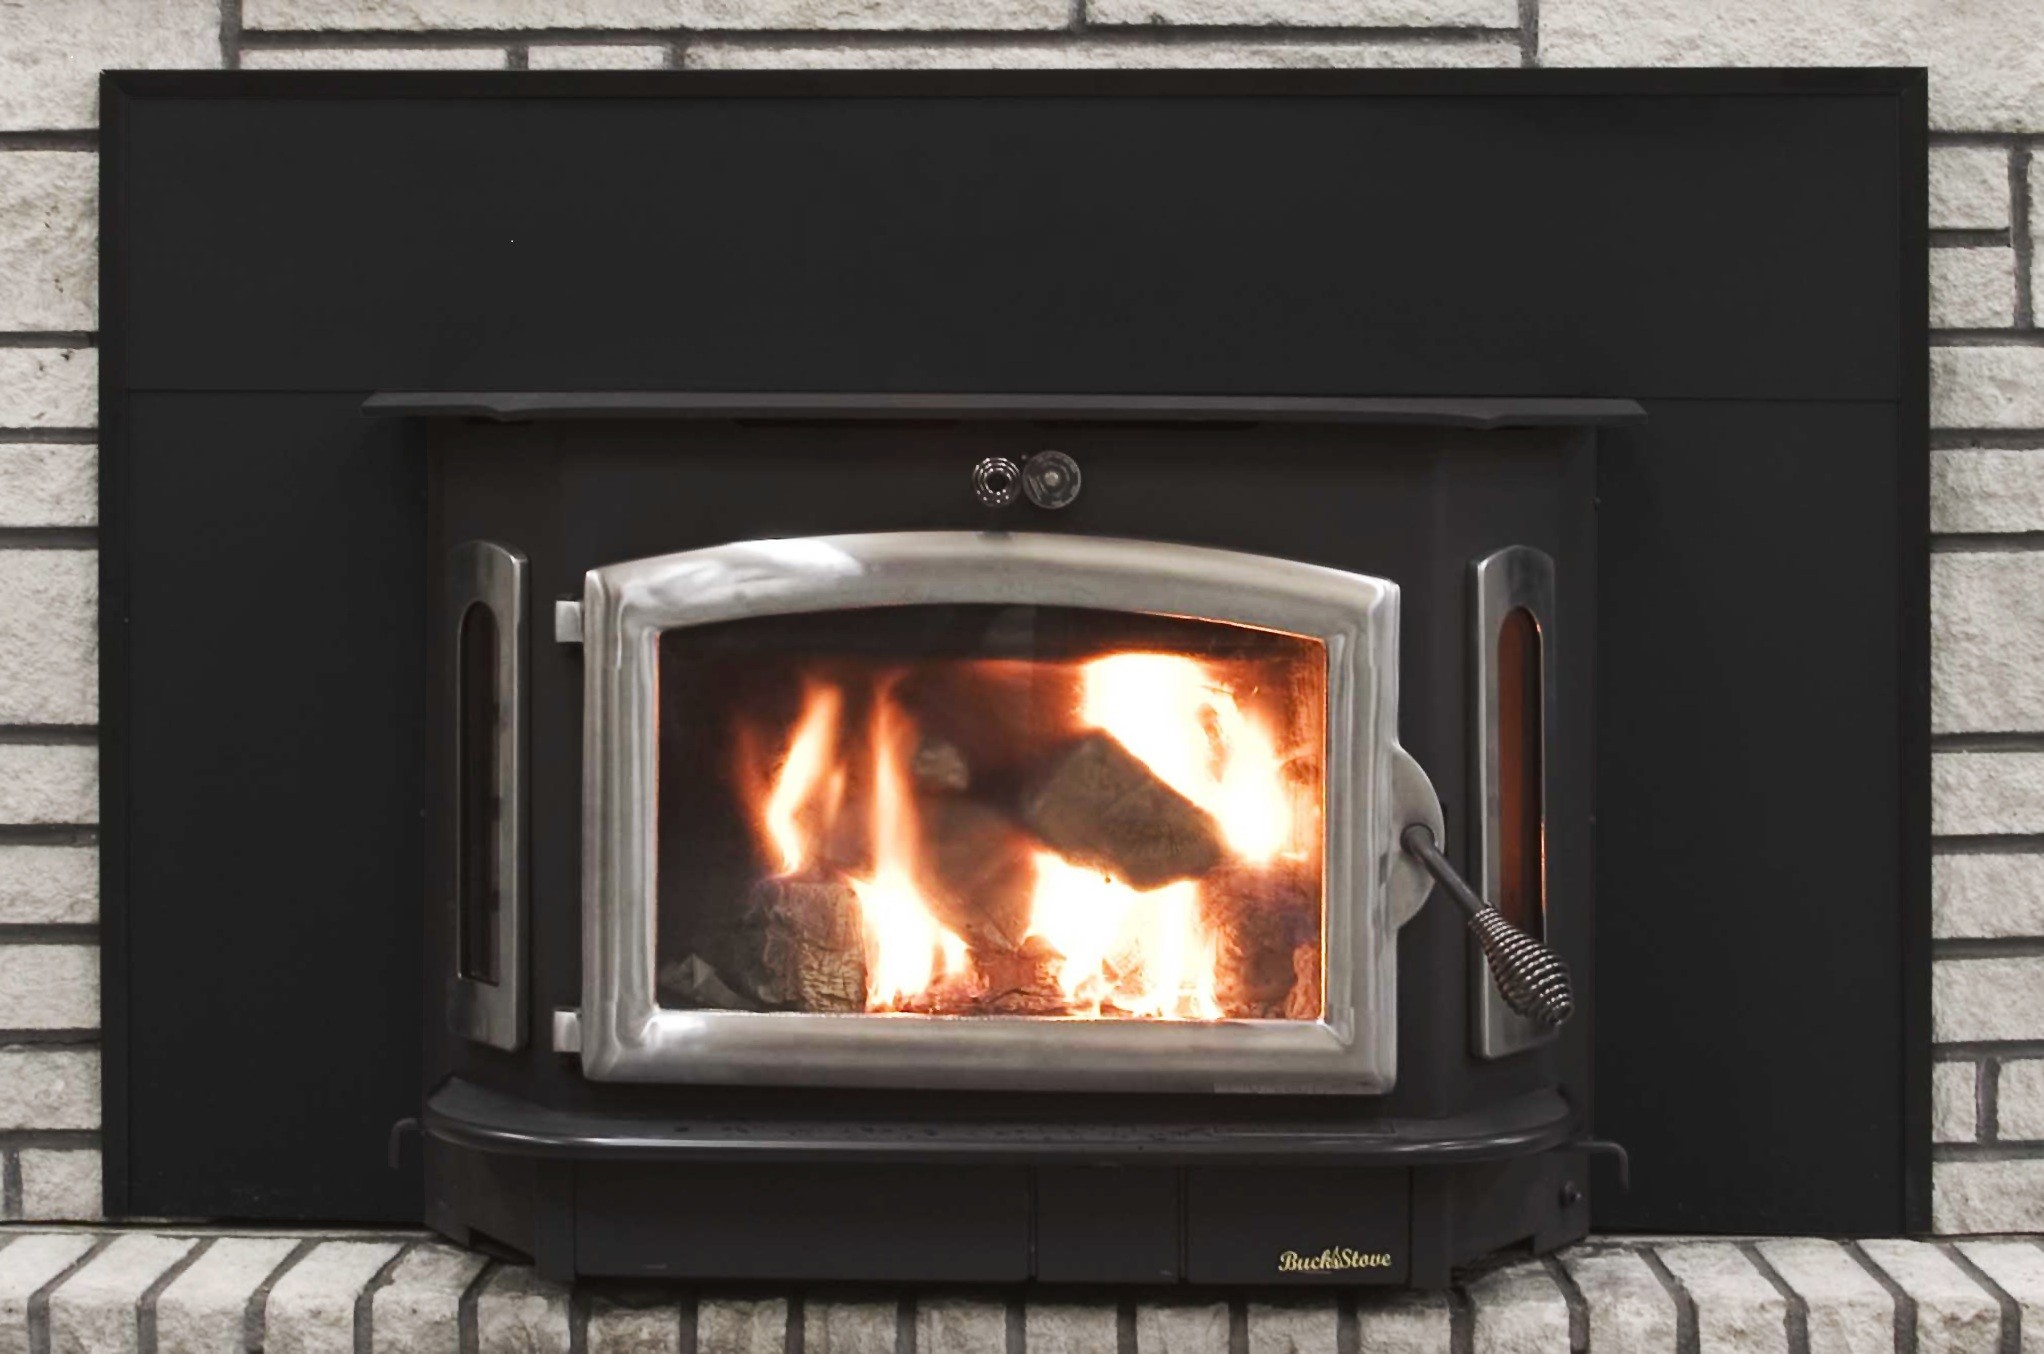 See the variety or wood burning stoves and and pellet stoves in our Virginia Beach pools and spa stores. Call to buy wood burning stoves in Virginia Beach and Chesapeake.